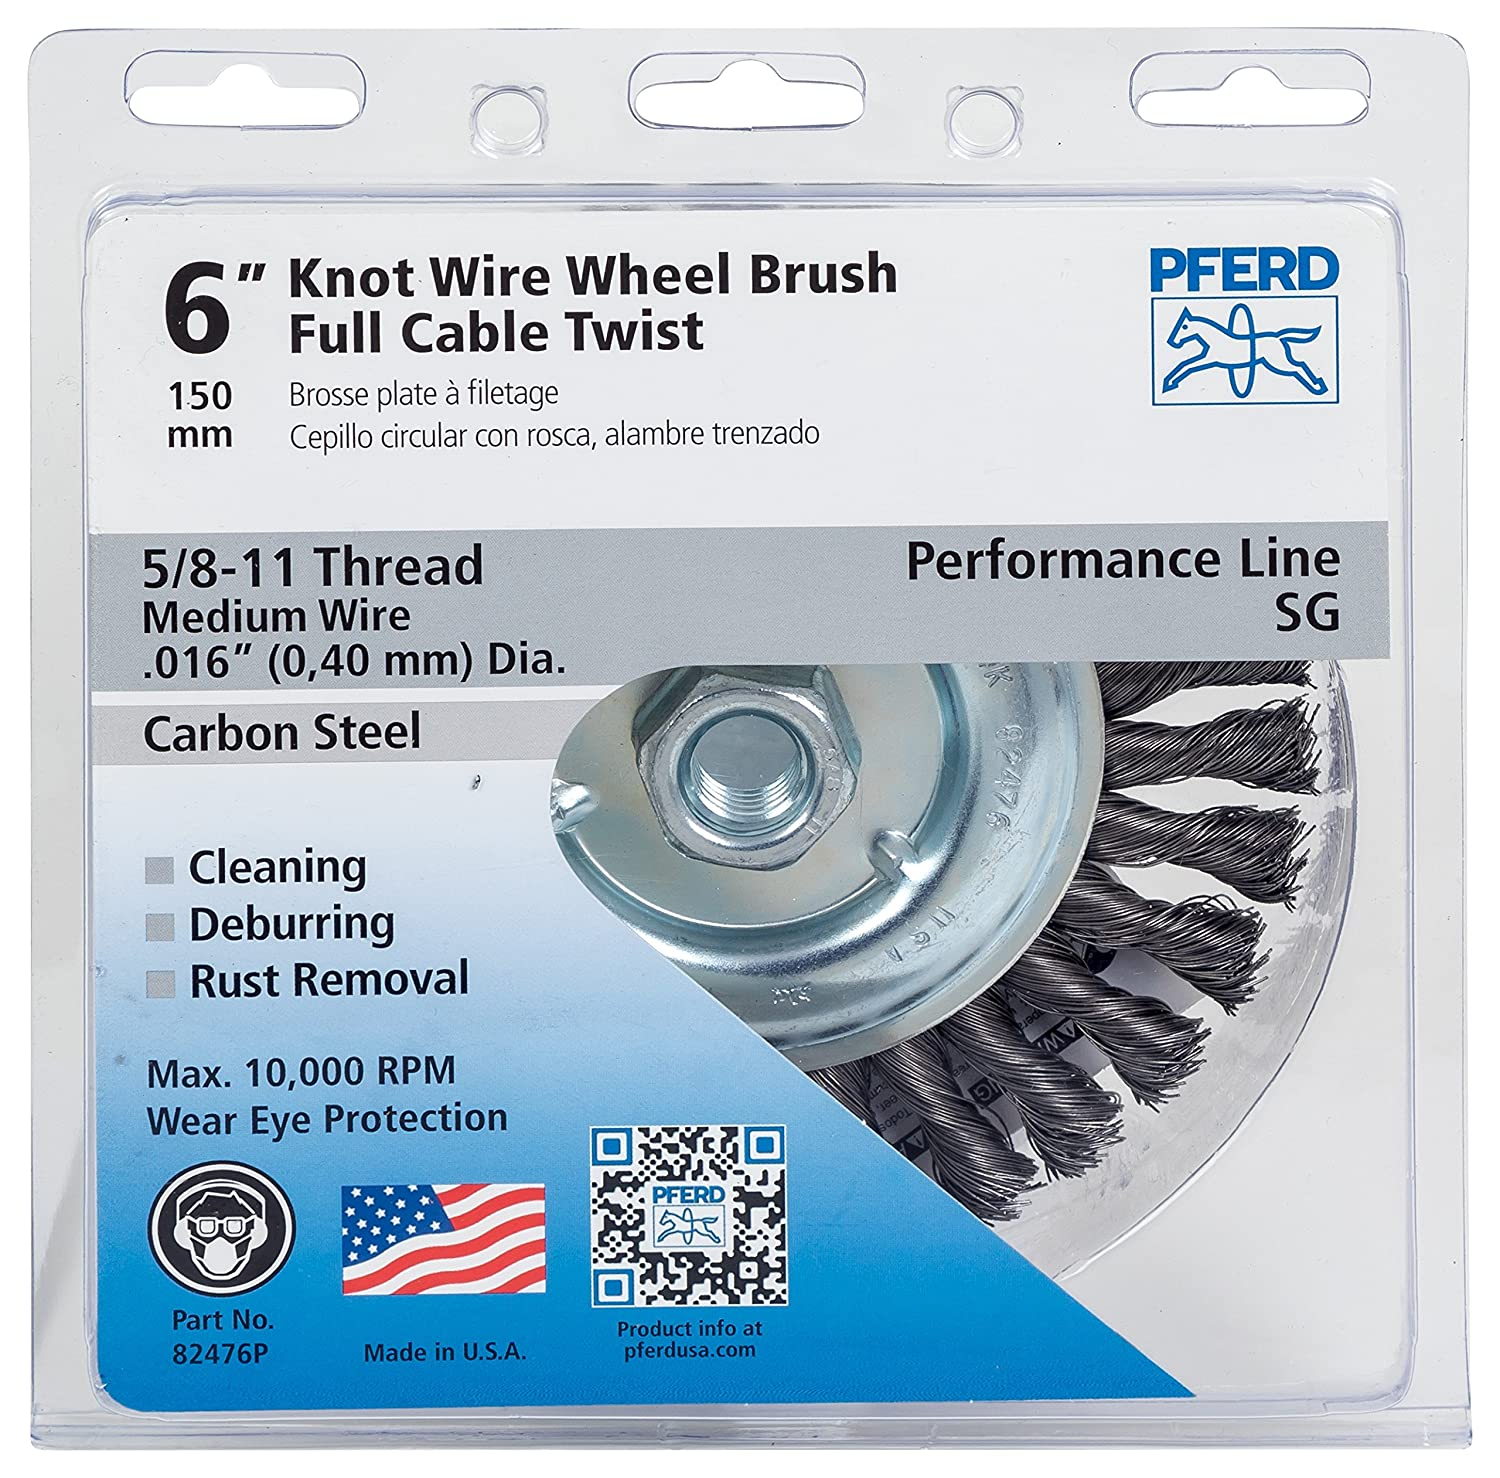 Pferd 82476P Full Cable Twist Knot Wheel Brush, Carbon Steel Wire, 6 ...